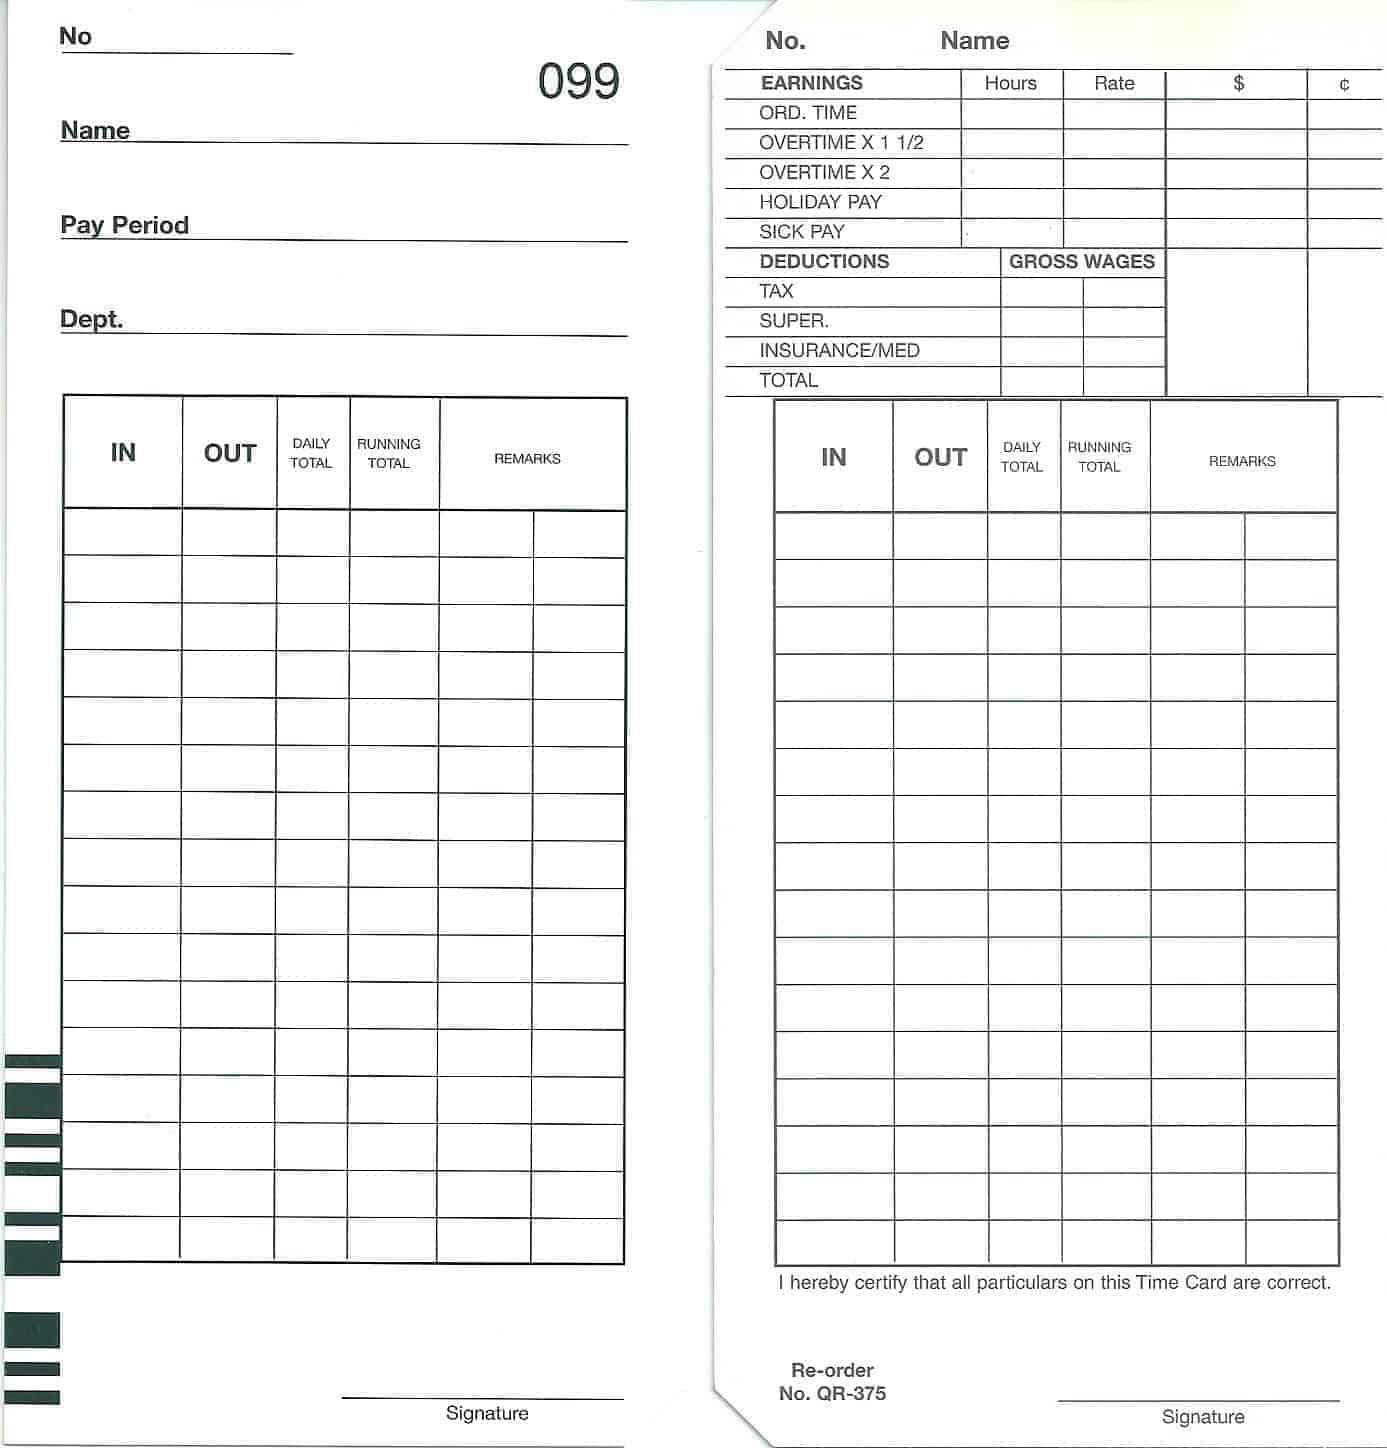 QR375D Time Cards - Packet of 100